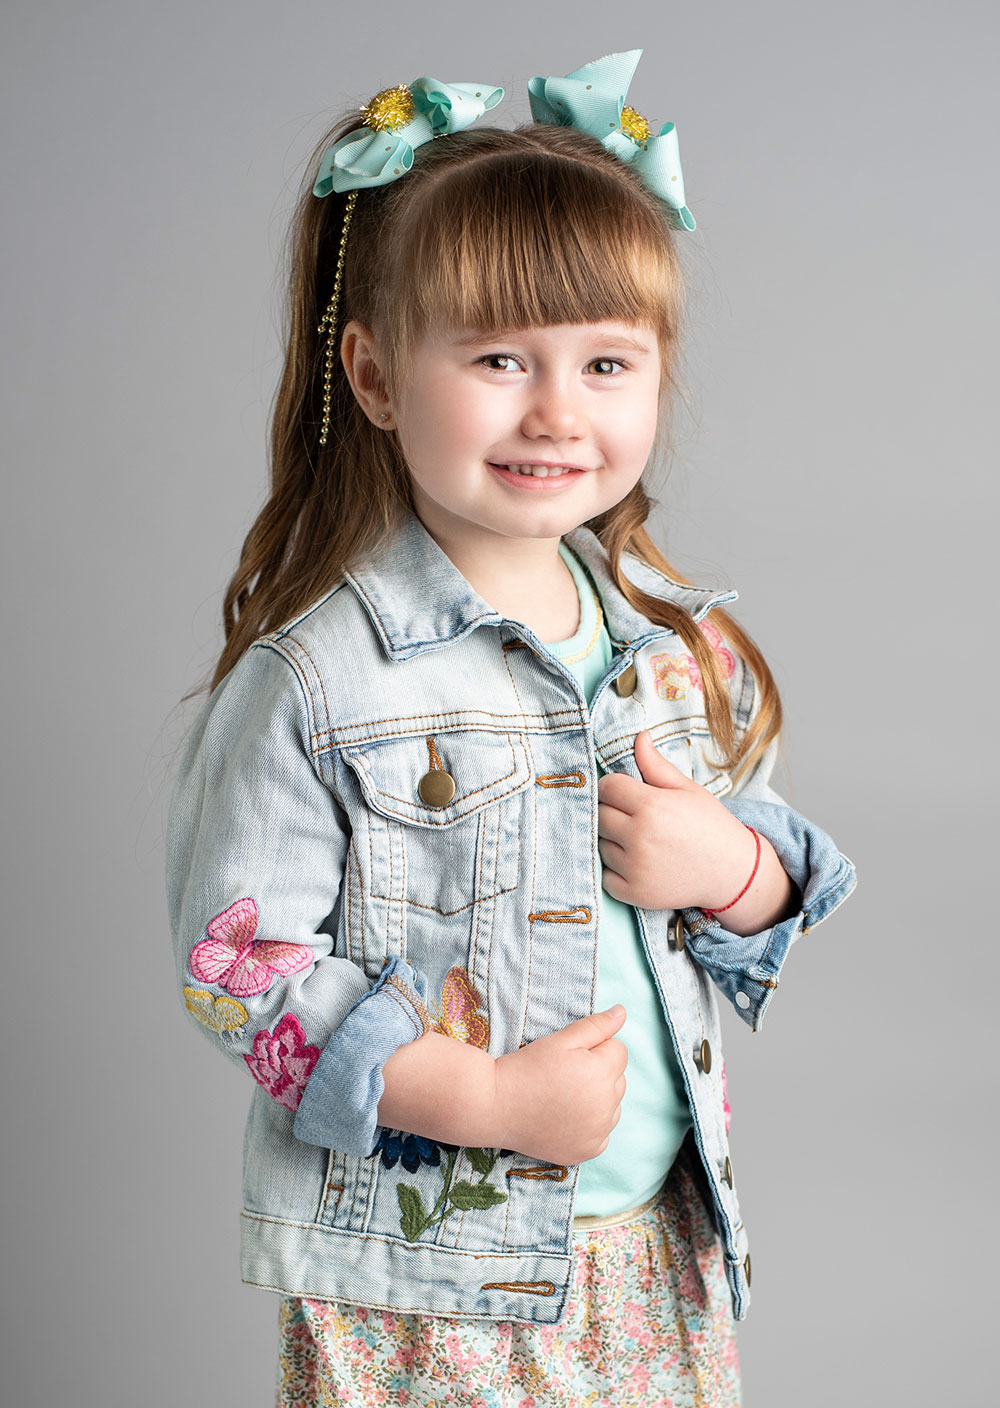 Heights-Preschool-Portraits-026.jpg